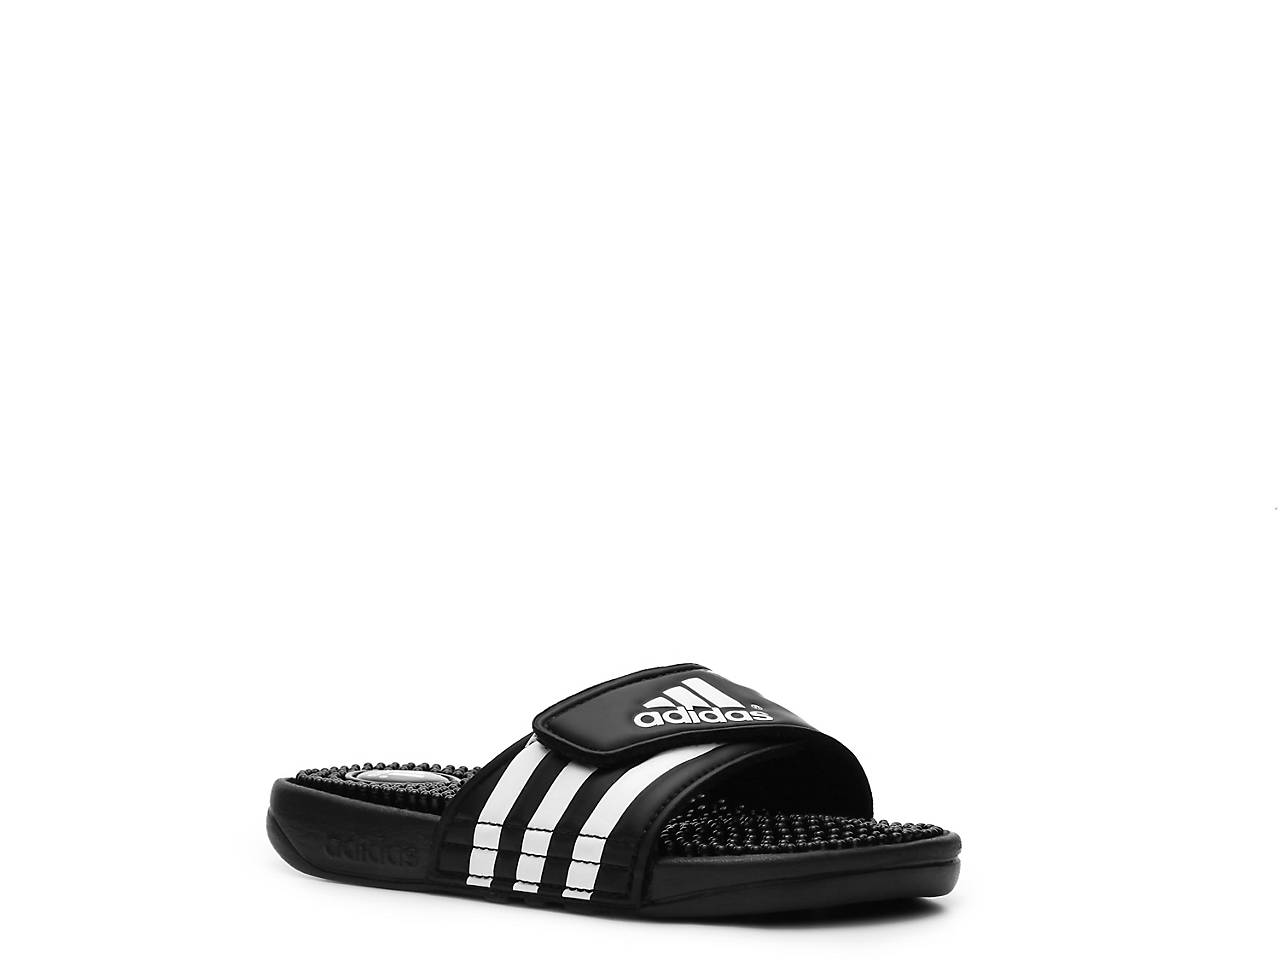 22ca781fb11a adidas Adissage Toddler   Youth Slide Sandal Kids Shoes